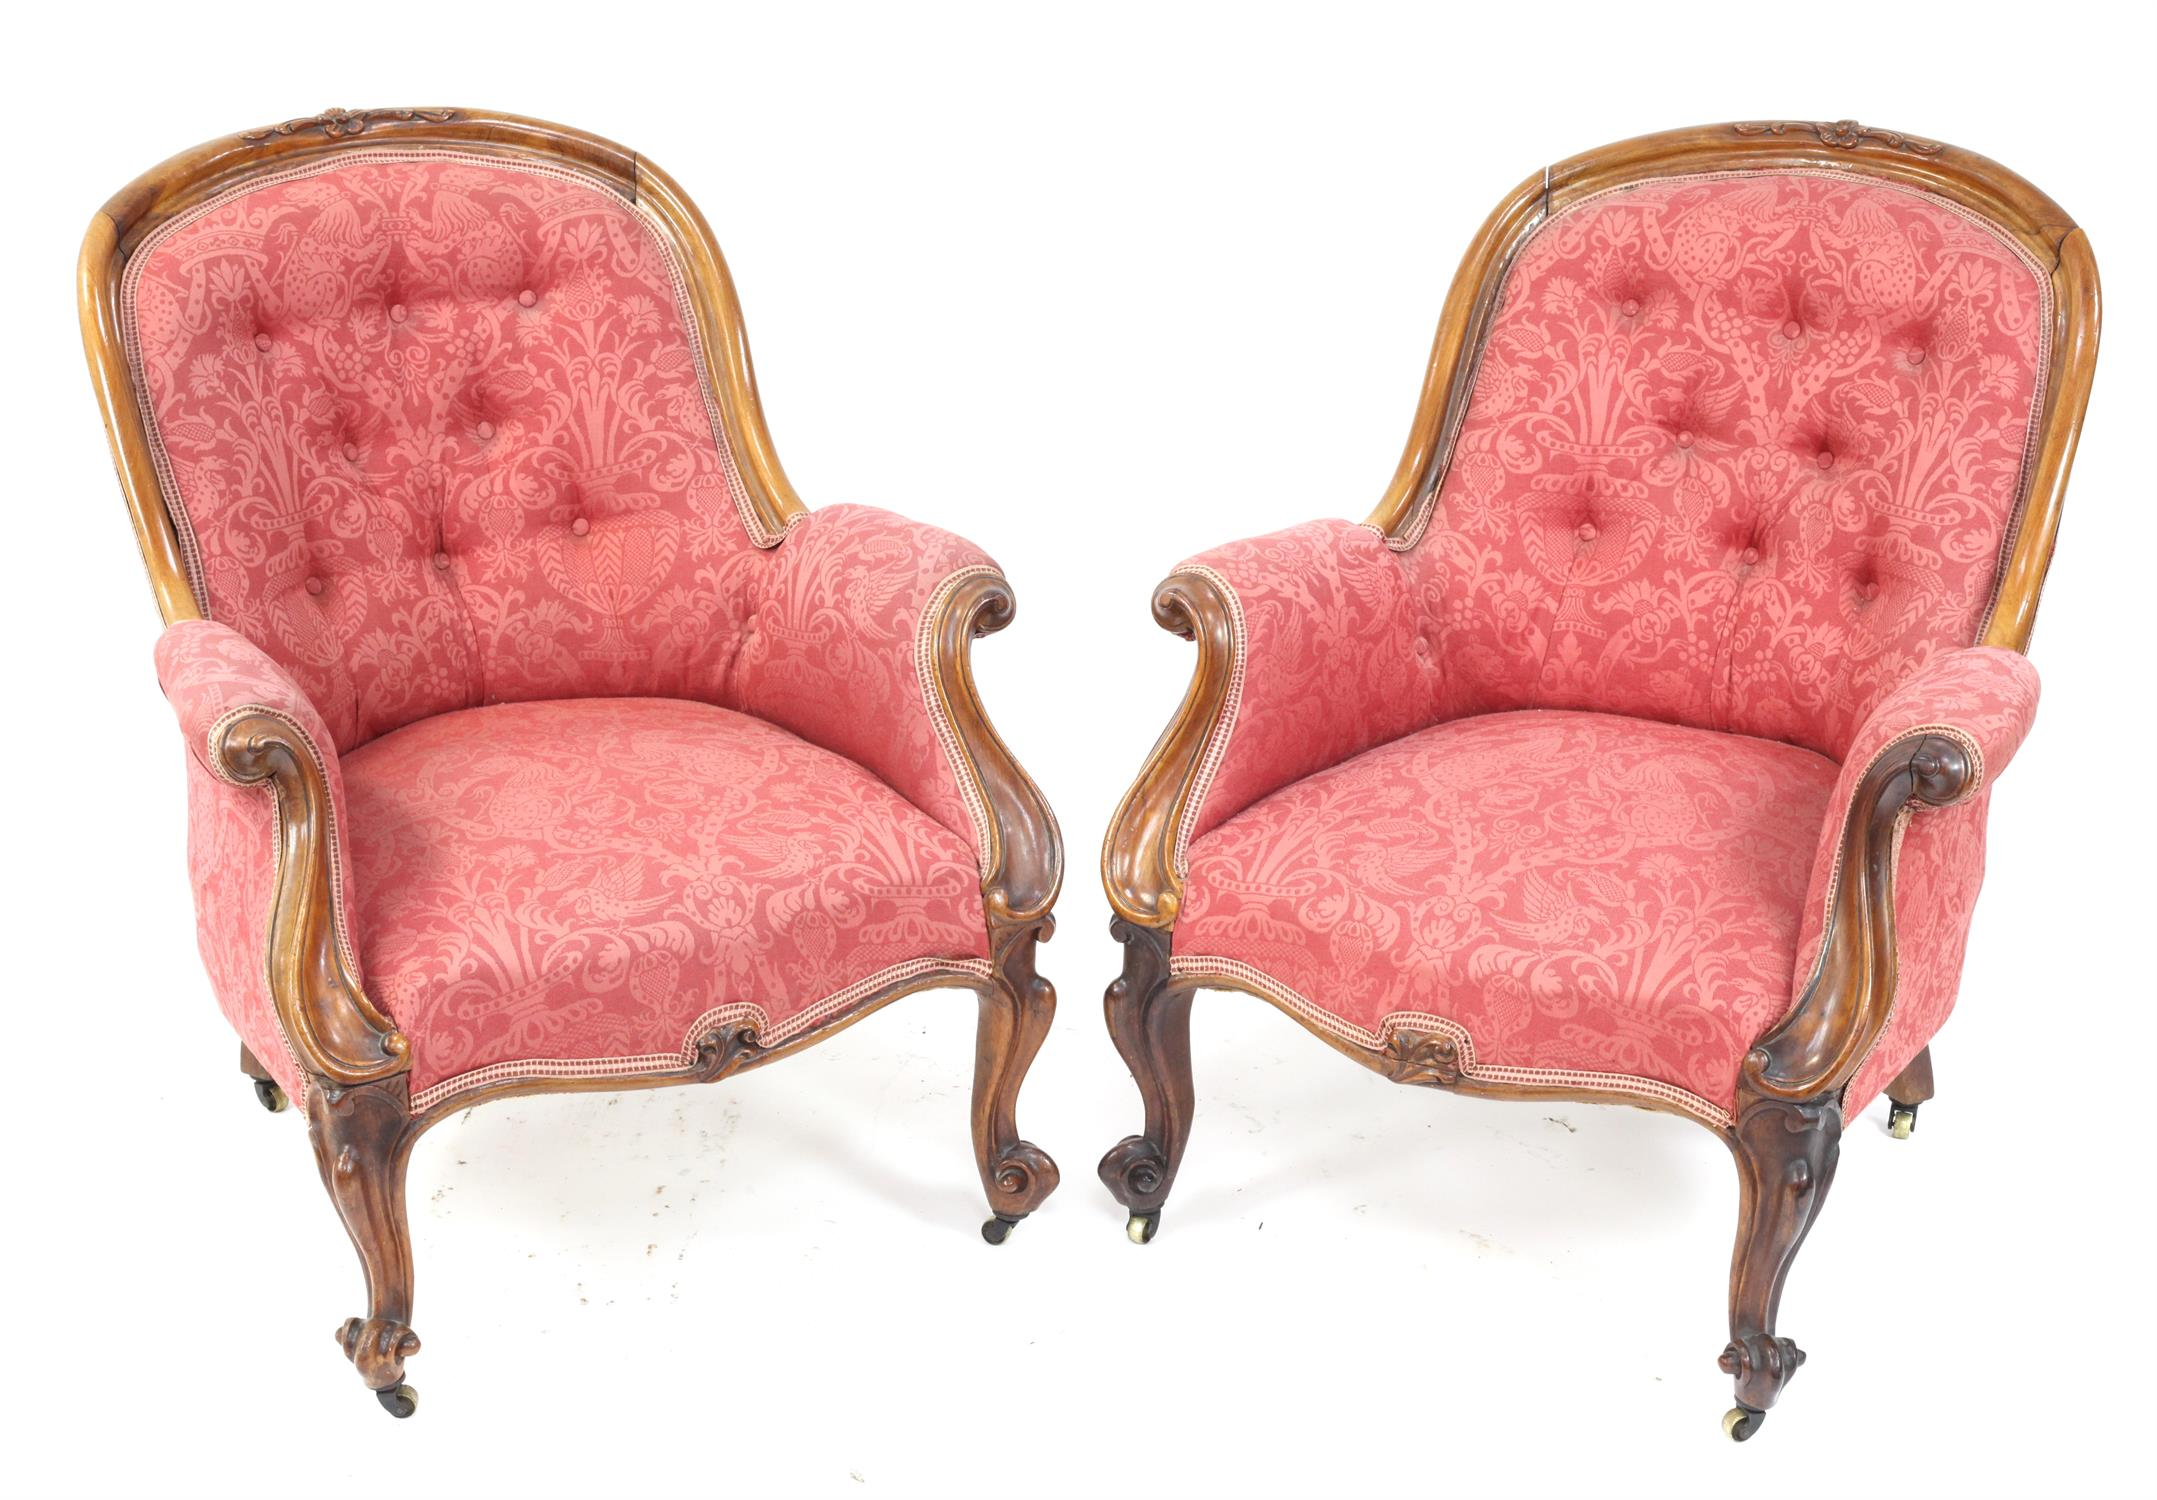 Pair of Victorian rosewood armchairs, with floral upholstery and scroll arms on cabriole legs and